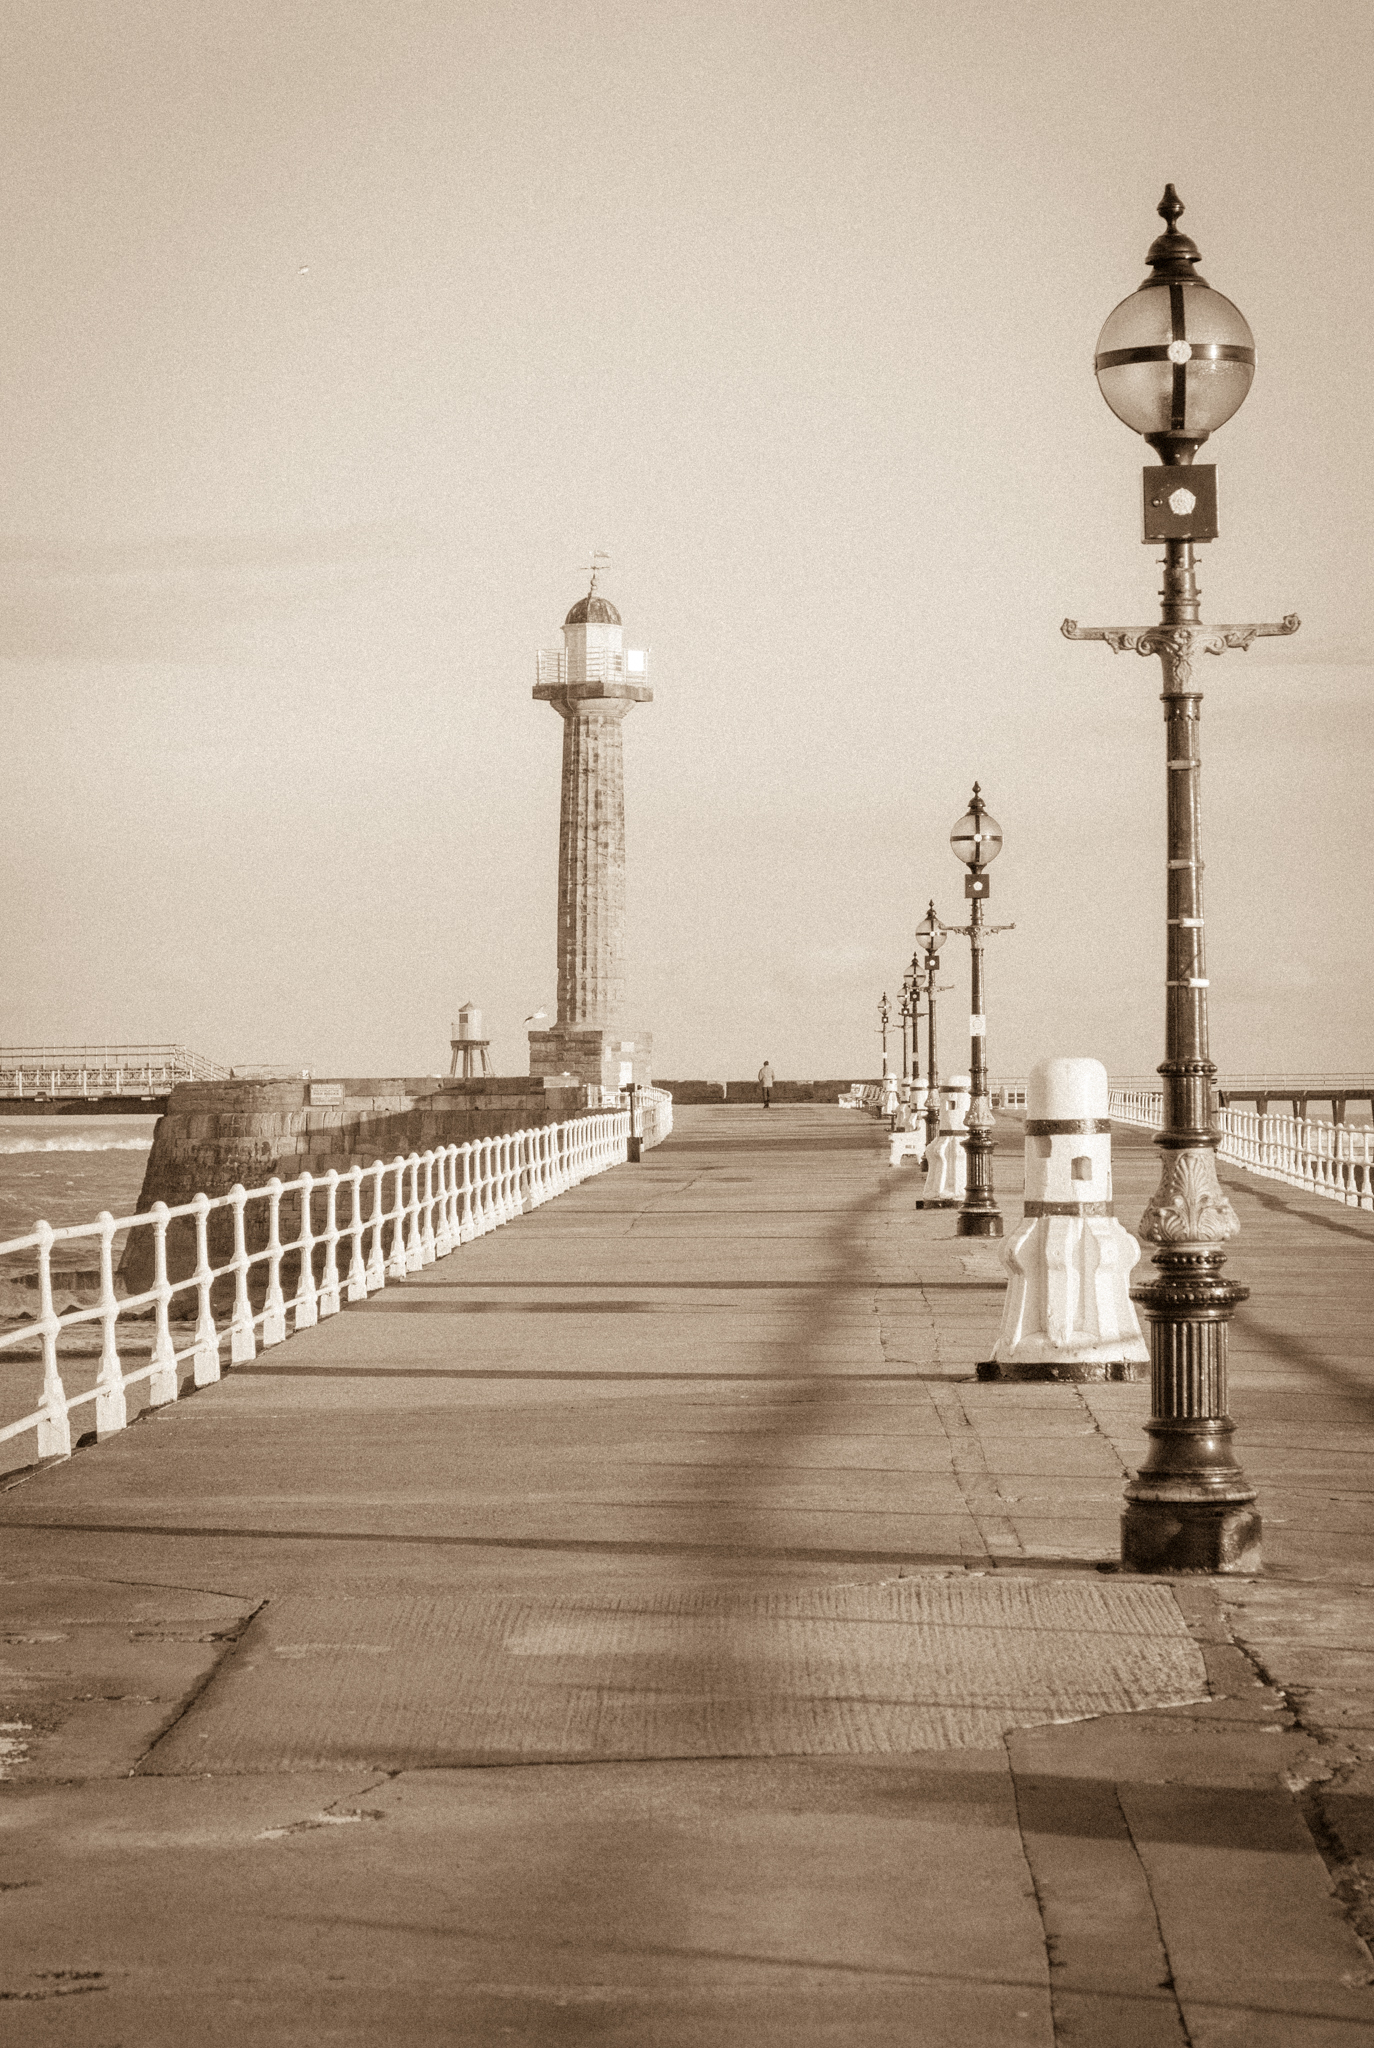 Whitby pier is not so much a blend of old and new, but more a celebration of old, having changed hardly at all since Nosferatu landed at the harbour. I've processed this image to reflect that 'time gone by' feel.